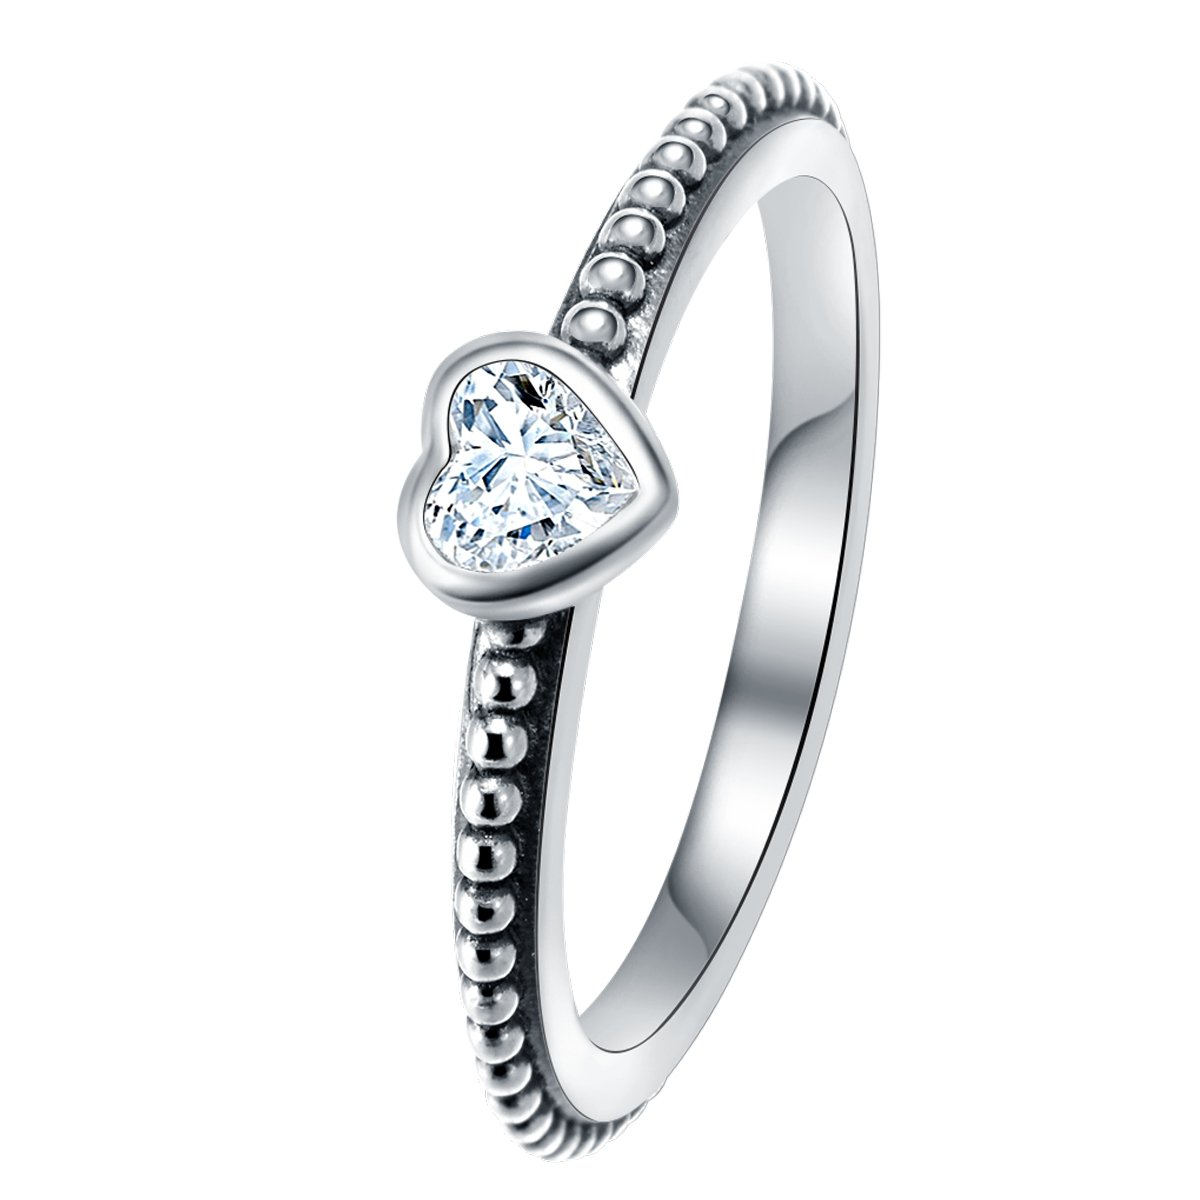 Changeable Solitaire Promise Rings - White Crystals, Solid 925 Sterling Silver # Size 6 (Soul Heart) by Changeable (Image #1)